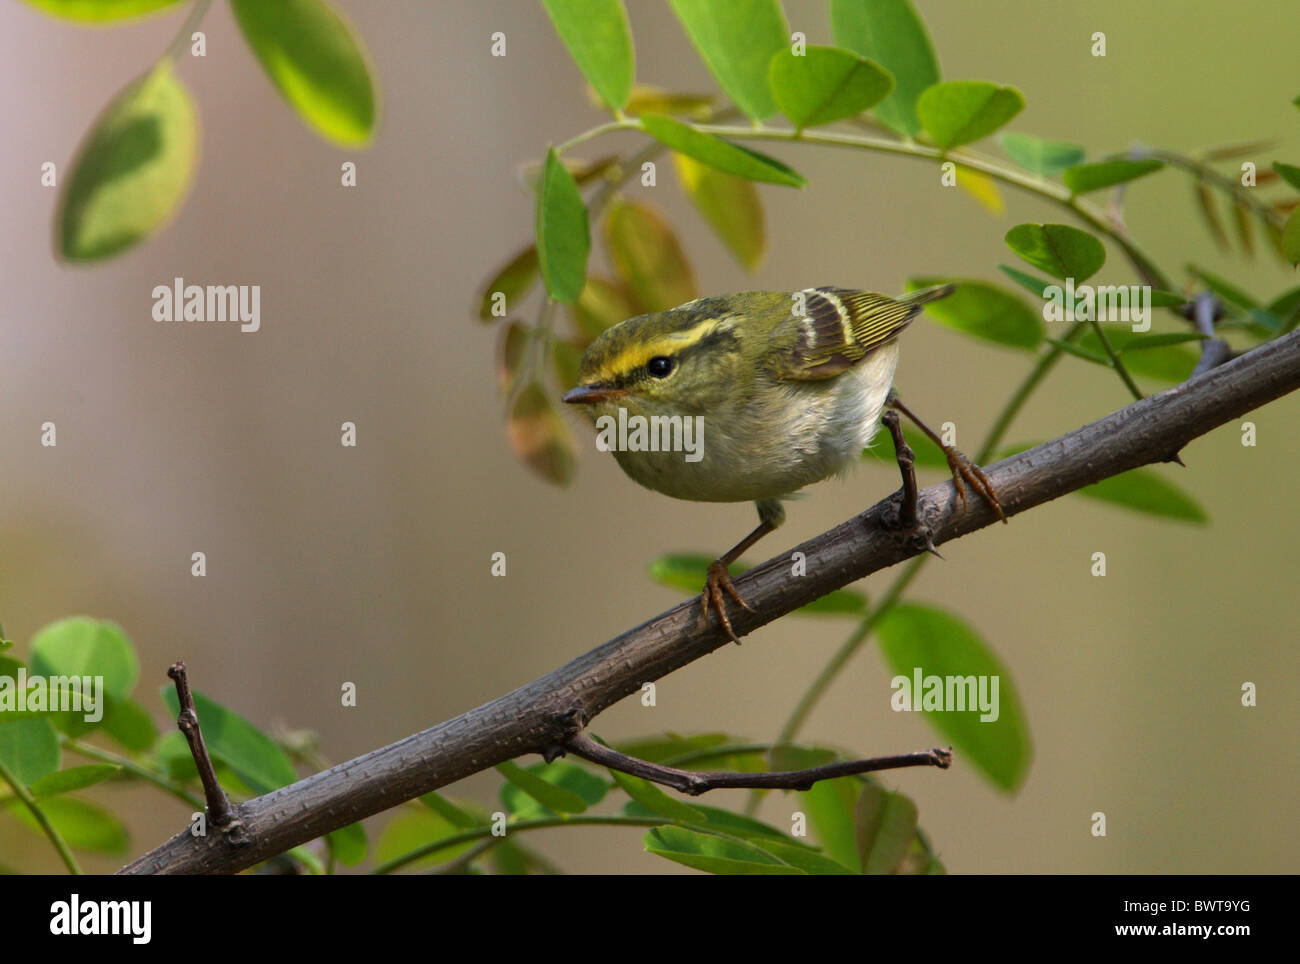 Pallas's Warbler (Phylloscopus proregulus) adult, perched on twig, Hebei, China, may Stock Photo